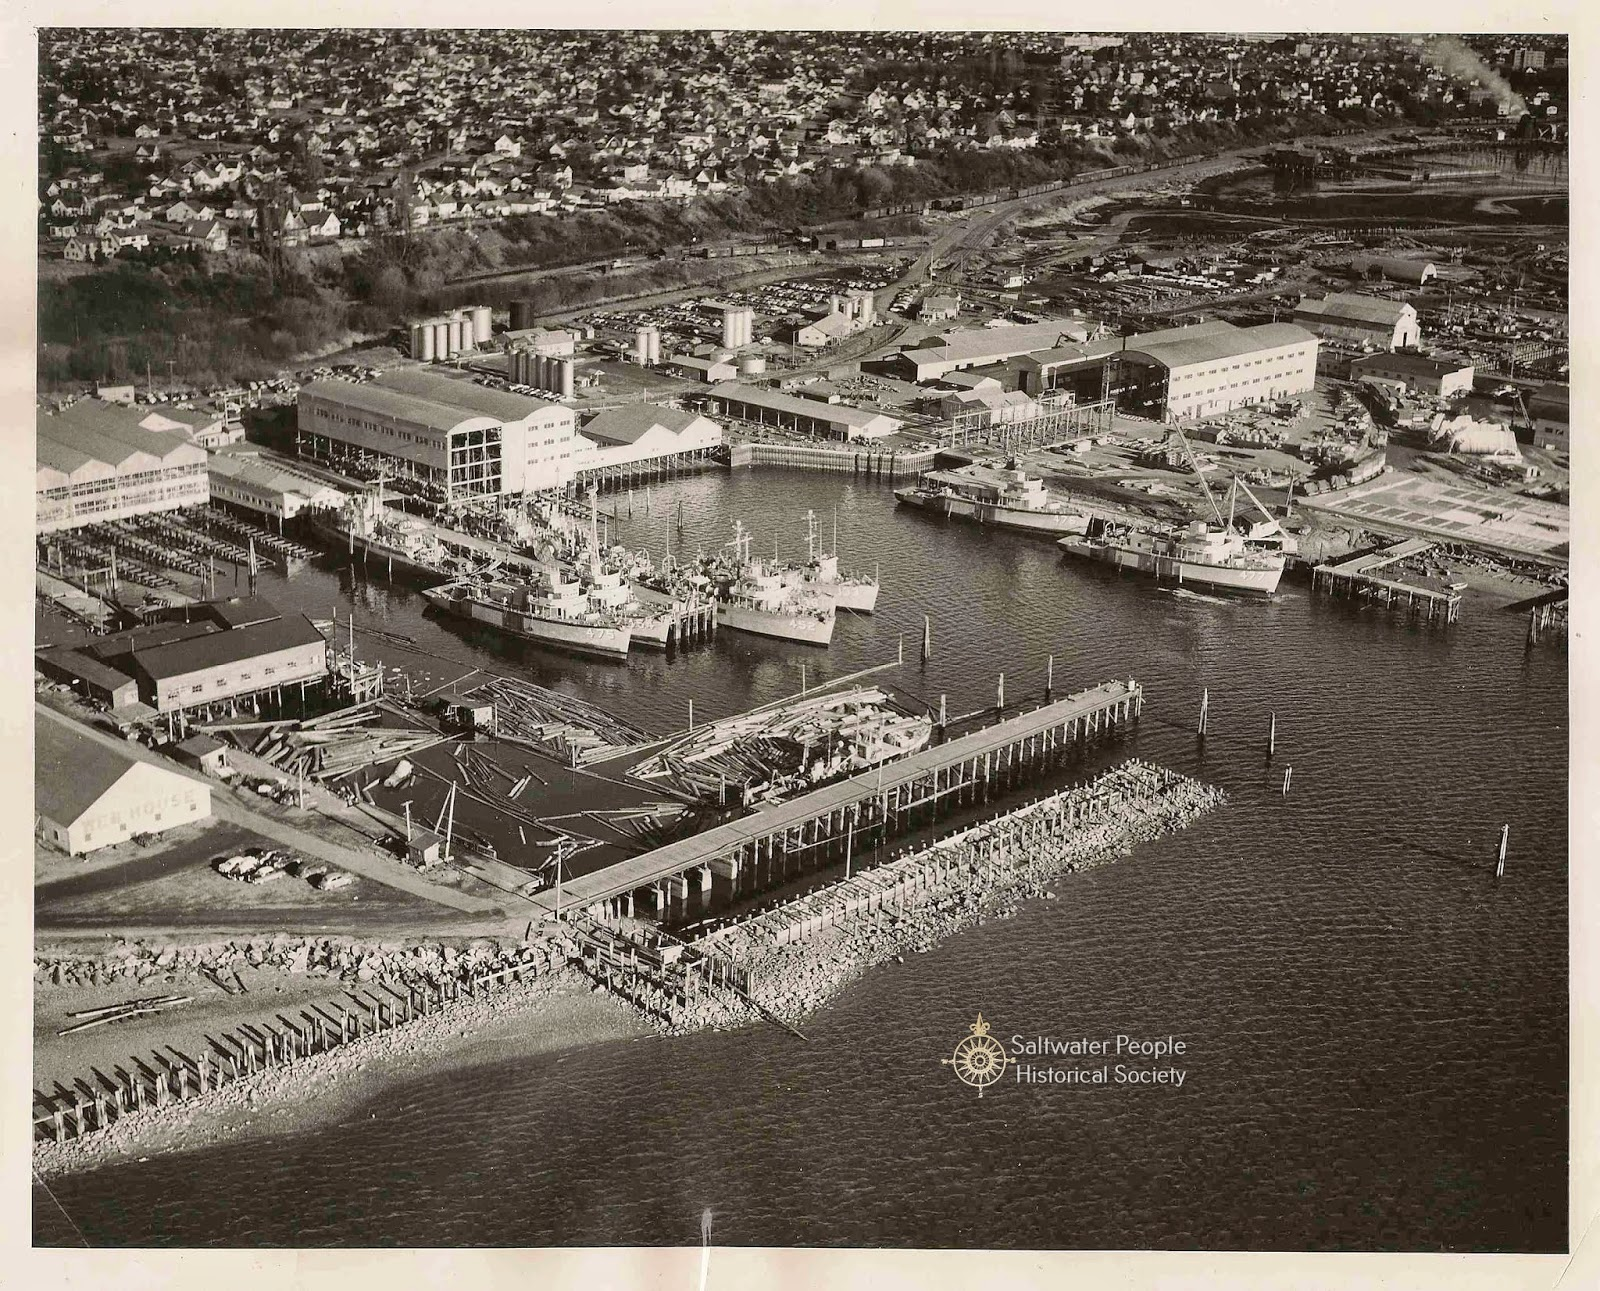 Saltwater People Log: 1950 ❖The Bellingham Shipyard